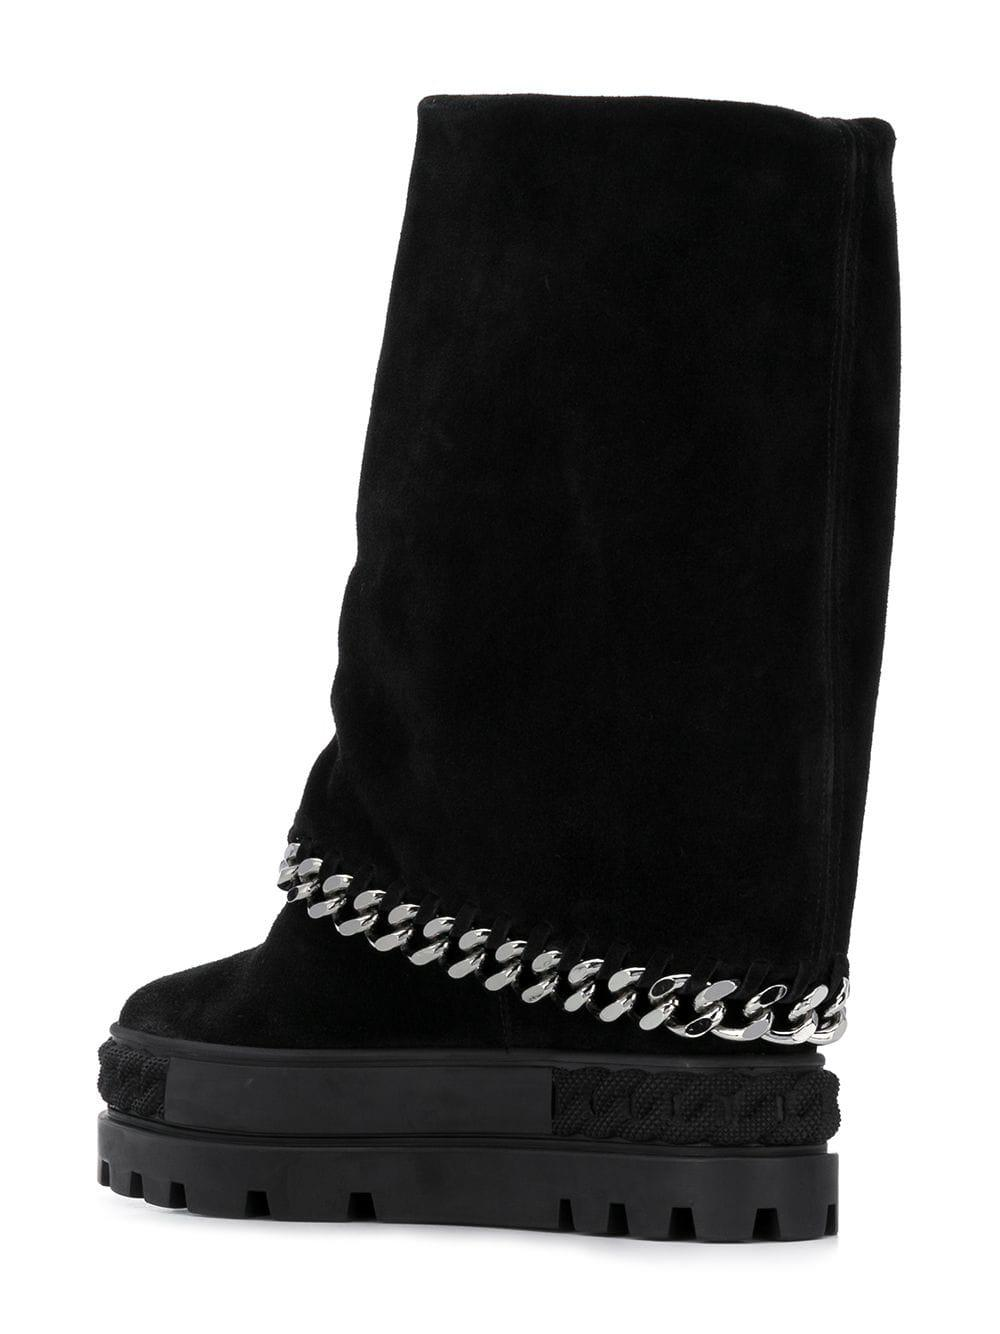 Casadei Leather Chain Trimmed Boots in Black